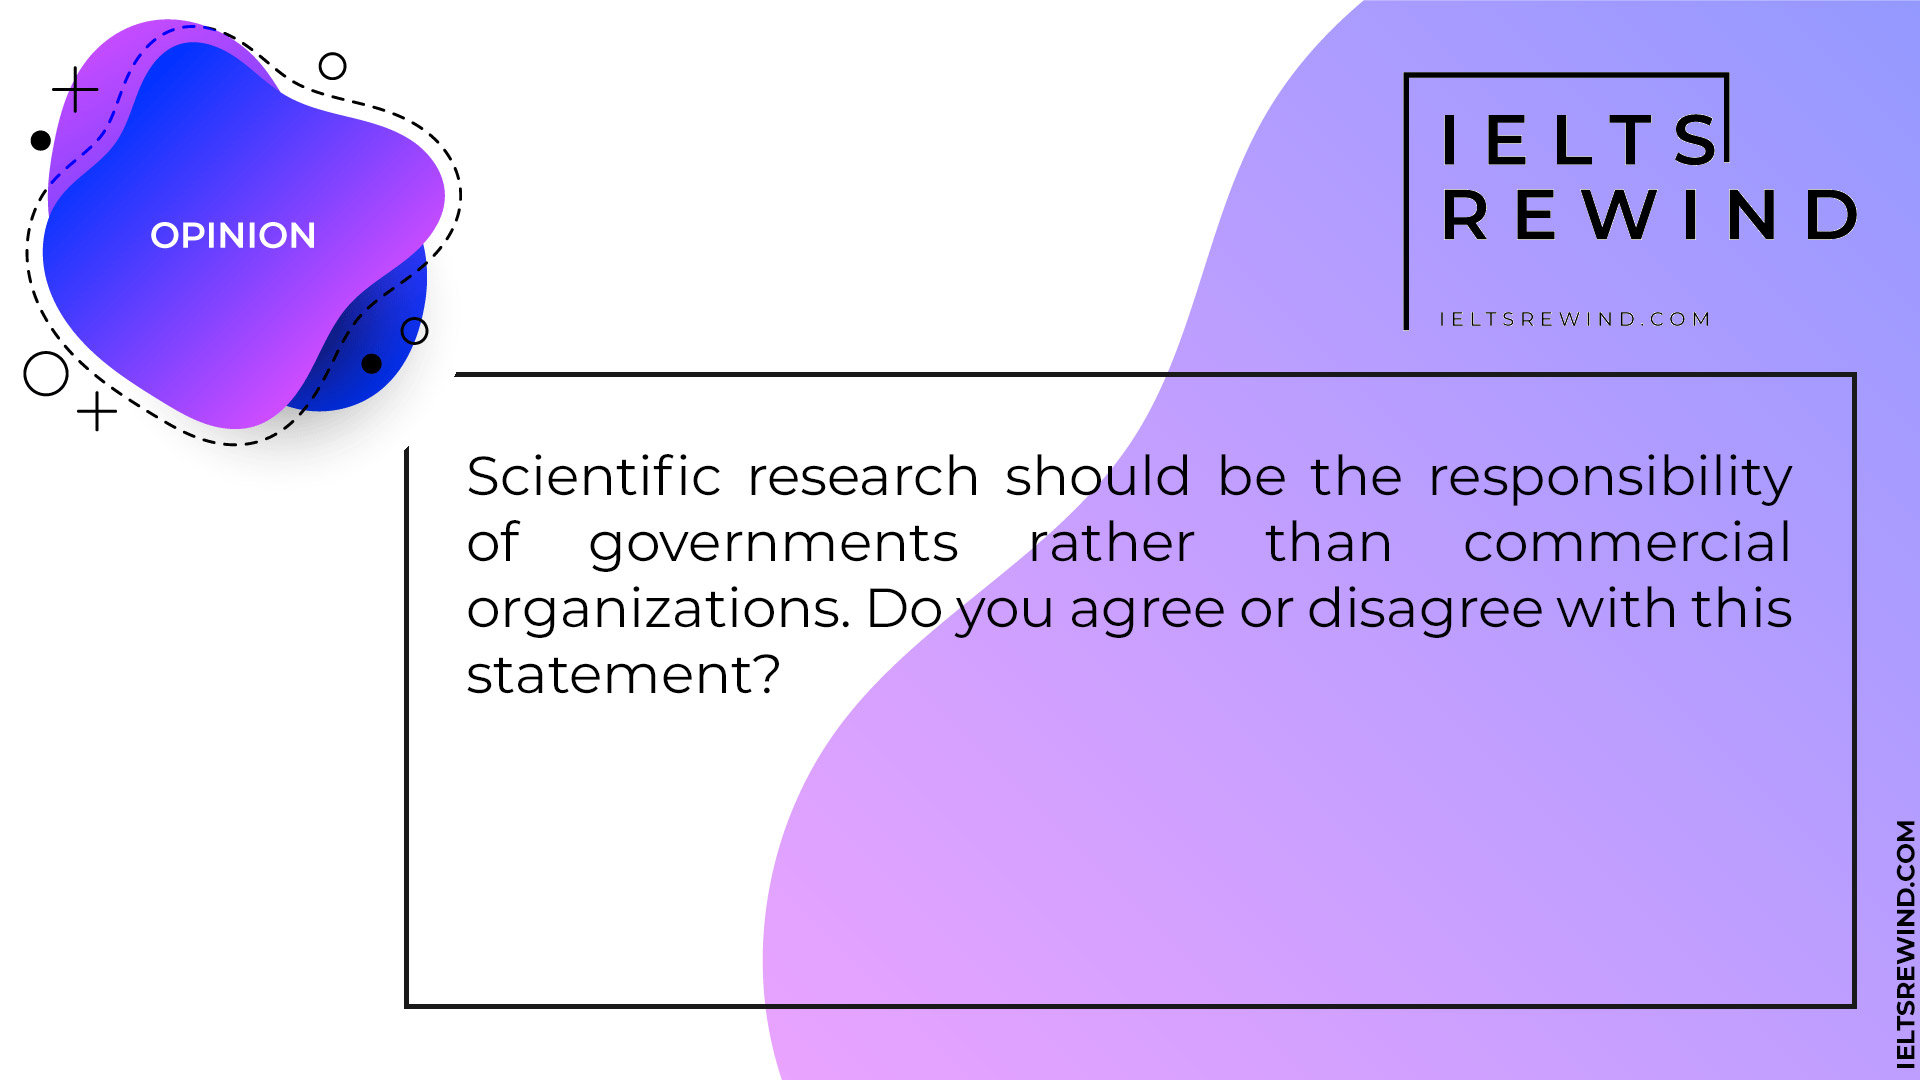 Scientific research should be the responsibility of governments